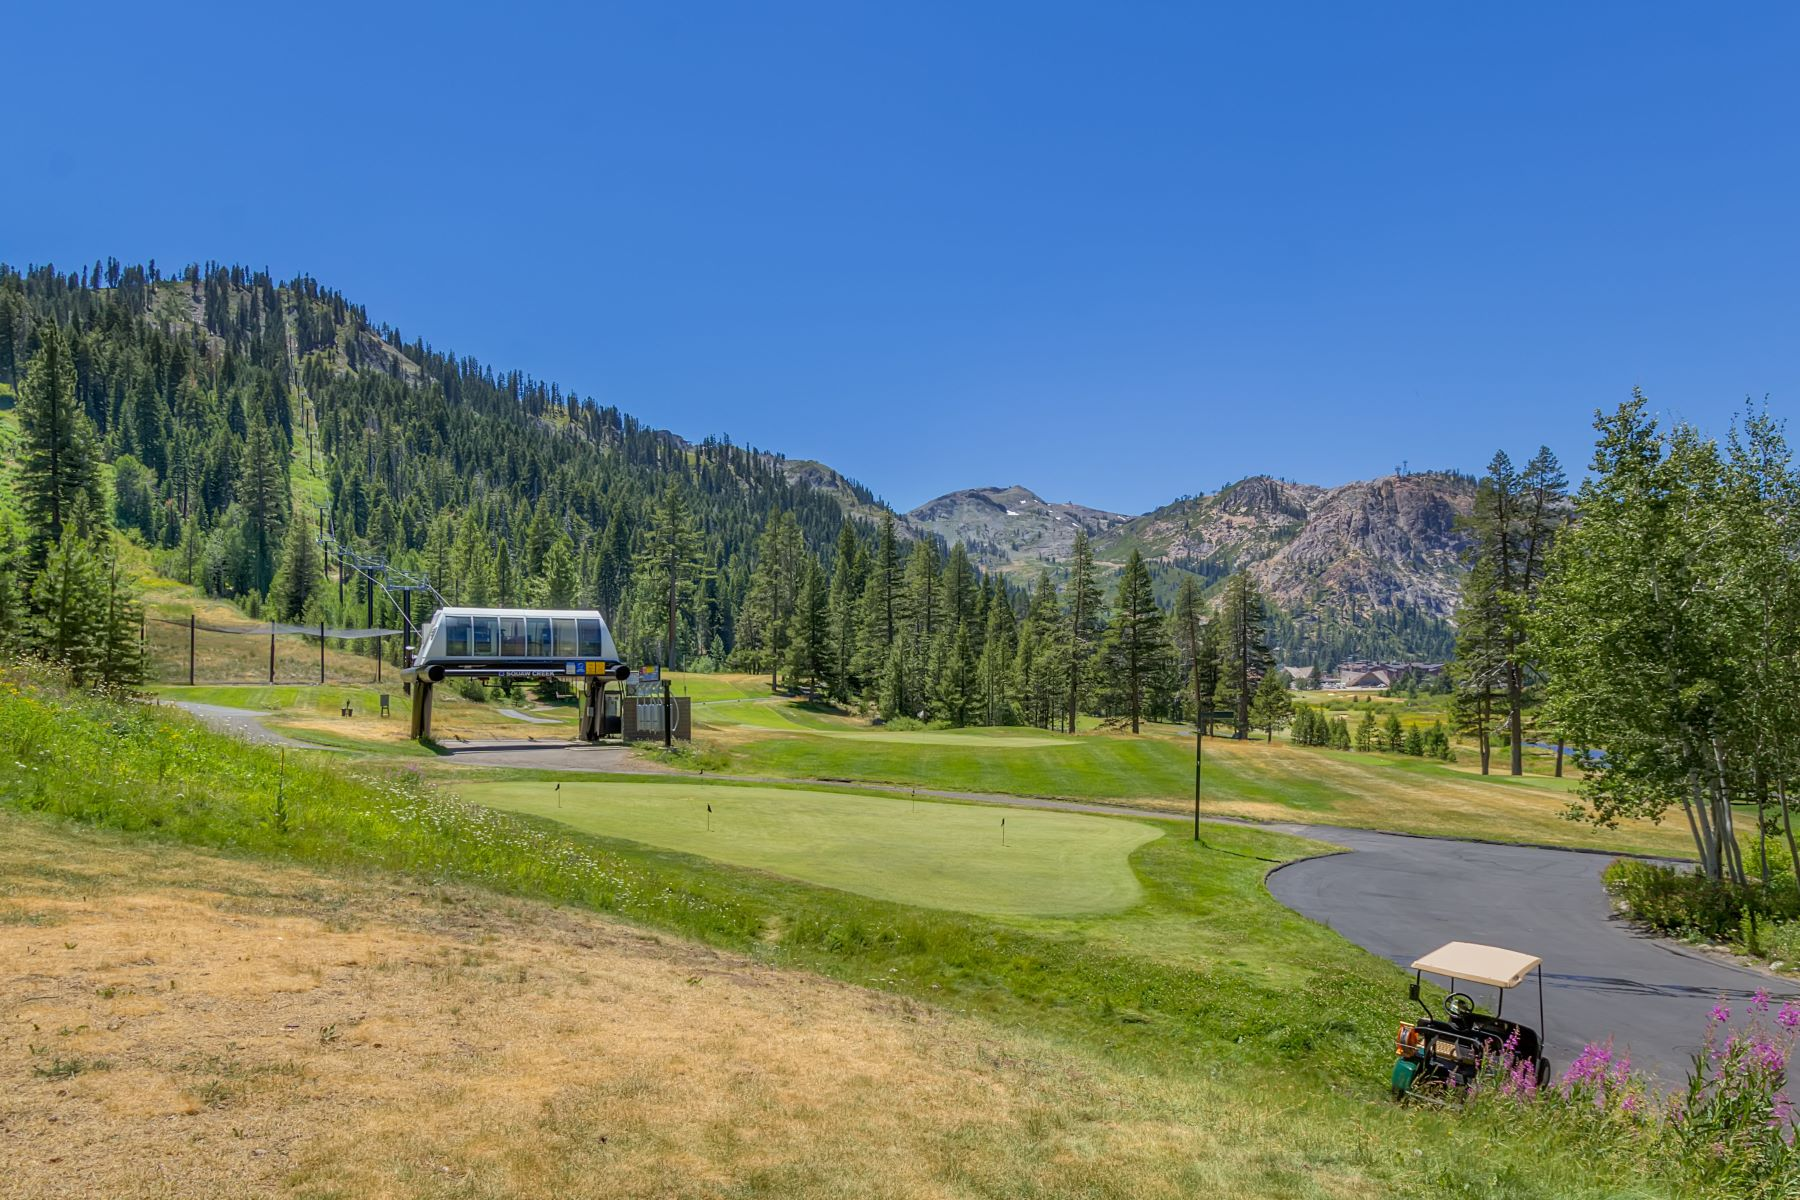 Additional photo for property listing at 400 Squaw Creek Road # 609/611, Olympic Valley Road, Ca 96146 400 Squaw Creek Road 609/611 Olympic Valley, California 96146 United States